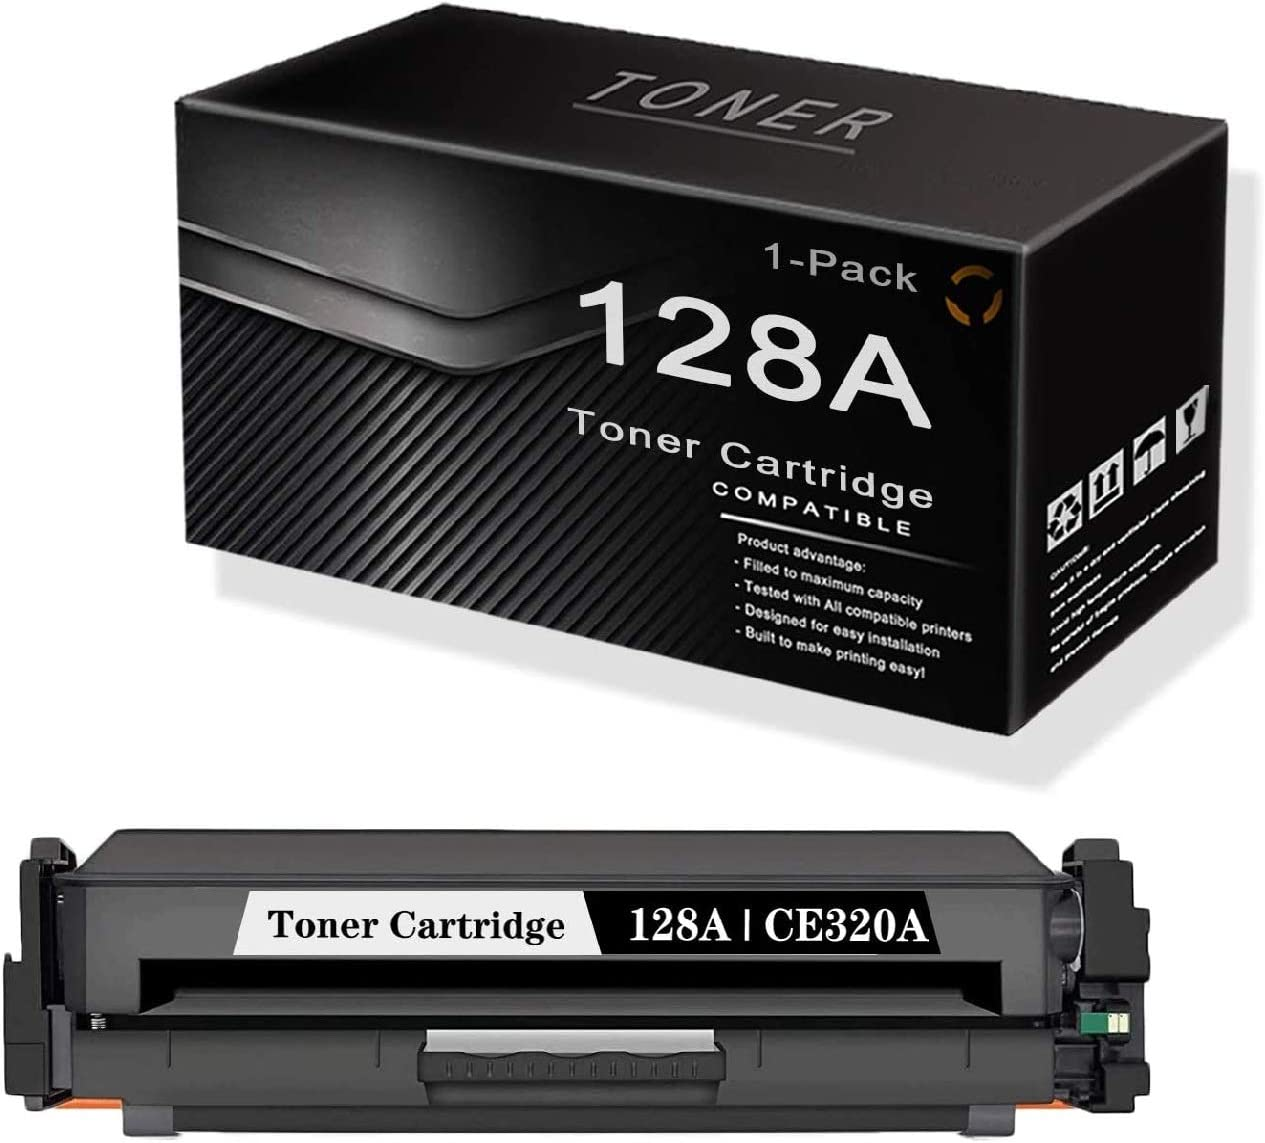 Black 128A   CE320A (1-Pack) Compatible Remanufactured and Replaceable for HP Color Laserjet CP1525n CP1525nw CM1415fn MFP CM1415fnw MFP Printers Toner.